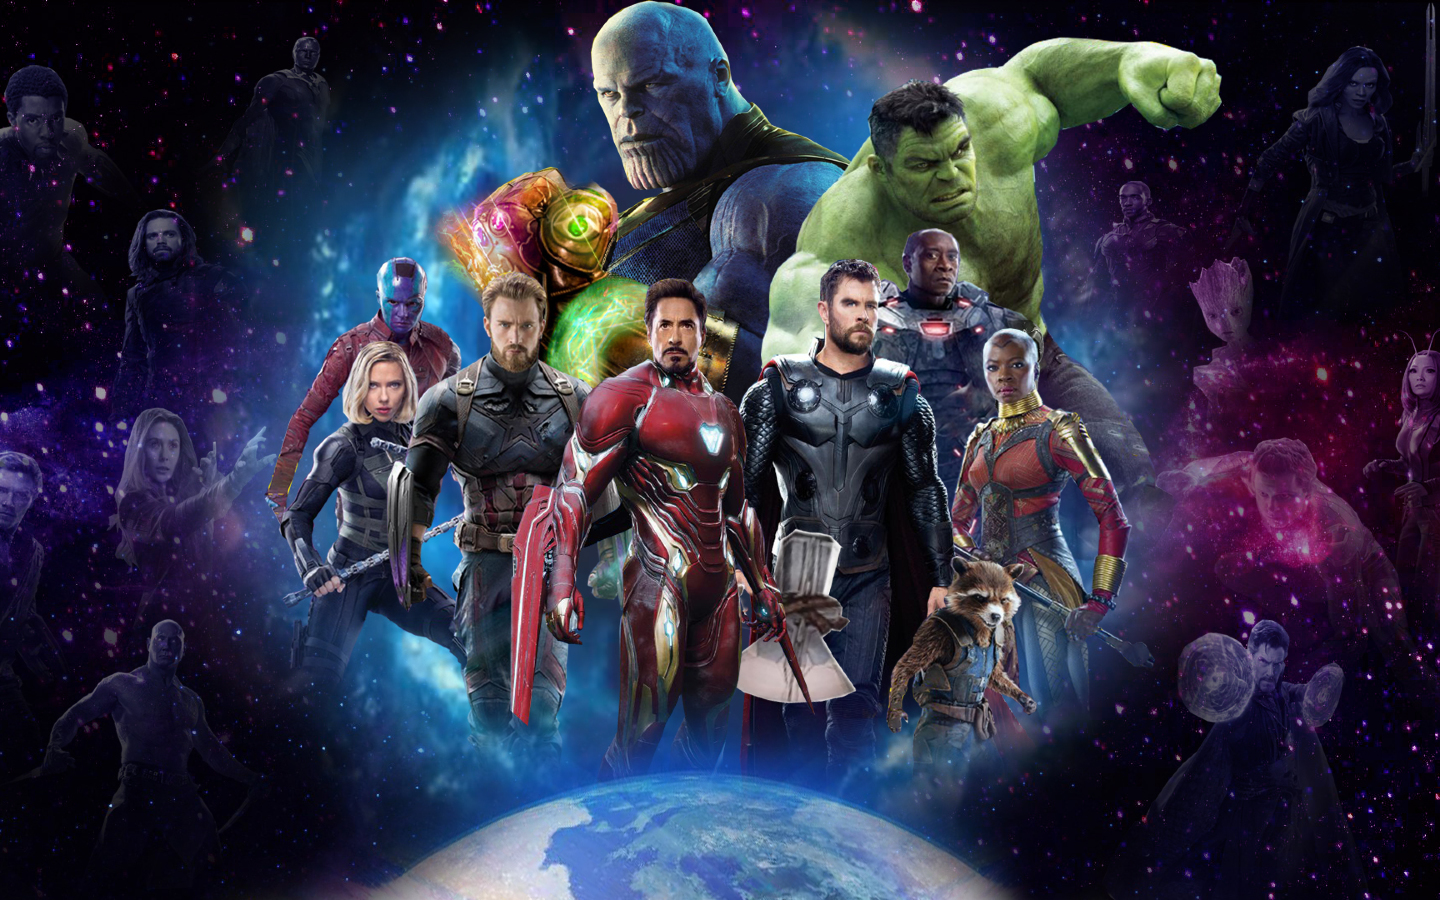 Download avengers 4 artwork from infinity war 800x1280 - Avengers hd wallpapers free download ...